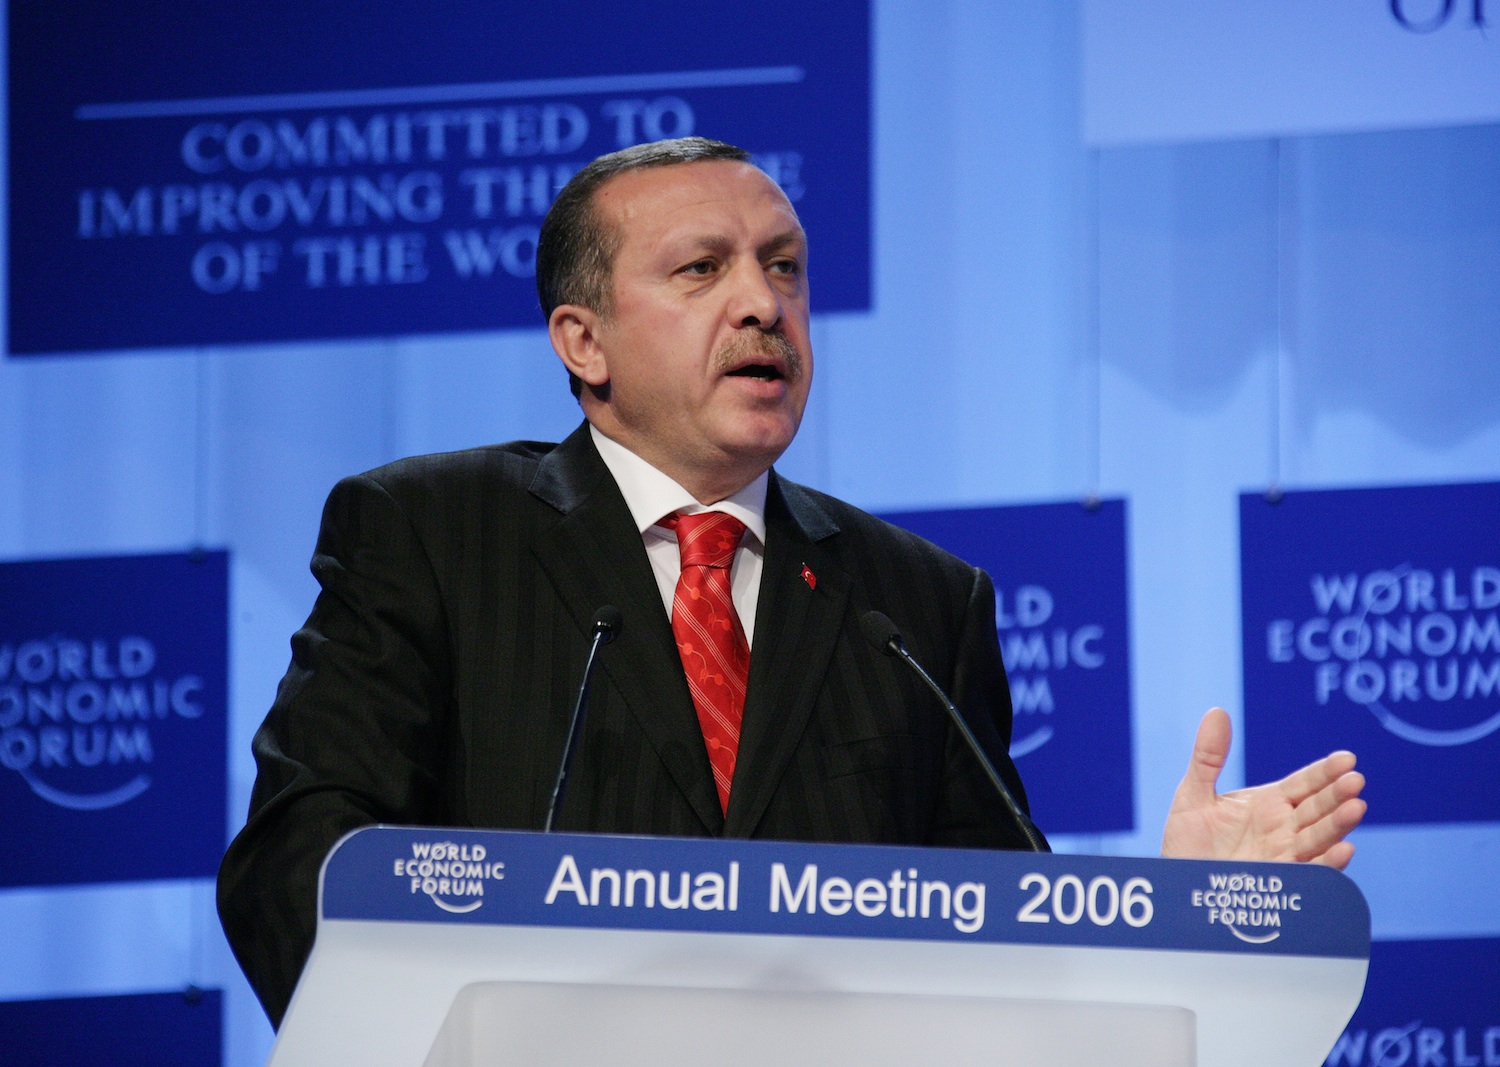 "Click photo to download. Caption: Turkish Prime Minister Recep Tayyip Erdoğan. Credit: World Economic Forum.                 0     0     1     6     38     JNS     1     1     43     14.0                            Normal     0                     false     false     false         EN-US     JA     X-NONE                                                                                                                                                                                                                                                                                                                                                                                                                                                                                                                                                                                                                                                                                                                    /* Style Definitions */ table.MsoNormalTable 	{mso-style-name:""Table Normal""; 	mso-tstyle-rowband-size:0; 	mso-tstyle-colband-size:0; 	mso-style-noshow:yes; 	mso-style-priority:99; 	mso-style-parent:""""; 	mso-padding-alt:0in 5.4pt 0in 5.4pt; 	mso-para-margin:0in; 	mso-para-margin-bottom:.0001pt; 	mso-pagination:widow-orphan; 	font-size:12.0pt; 	font-family:Cambria; 	mso-ascii-font-family:Cambria; 	mso-ascii-theme-font:minor-latin; 	mso-hansi-font-family:Cambria; 	mso-hansi-theme-font:minor-latin;}"